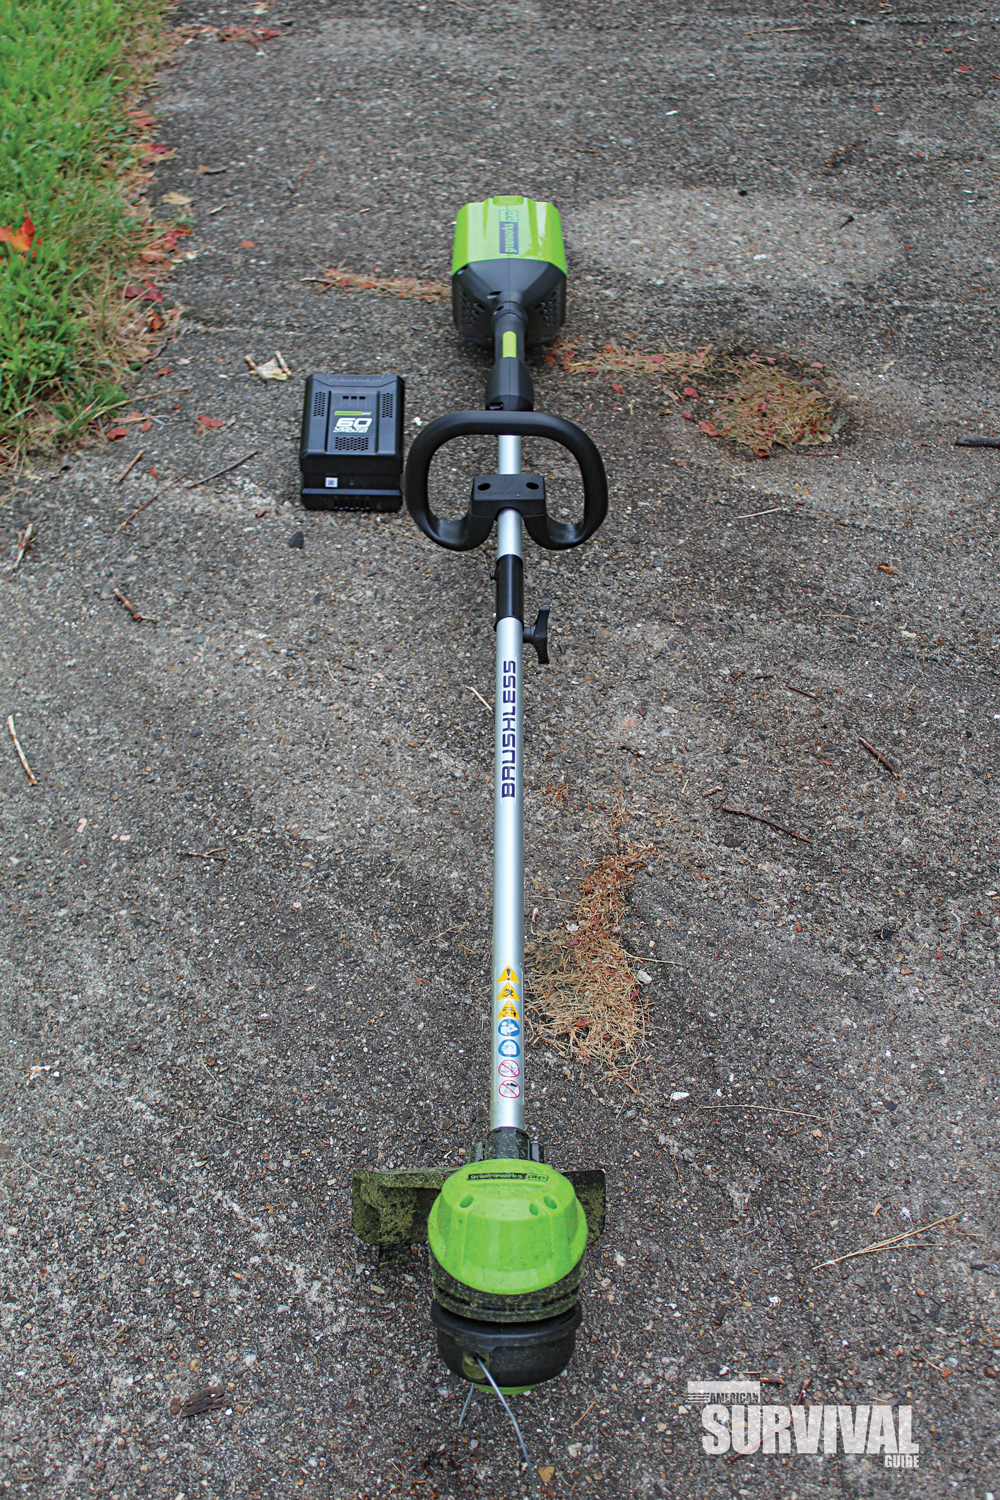 battery-powered weed trimmer